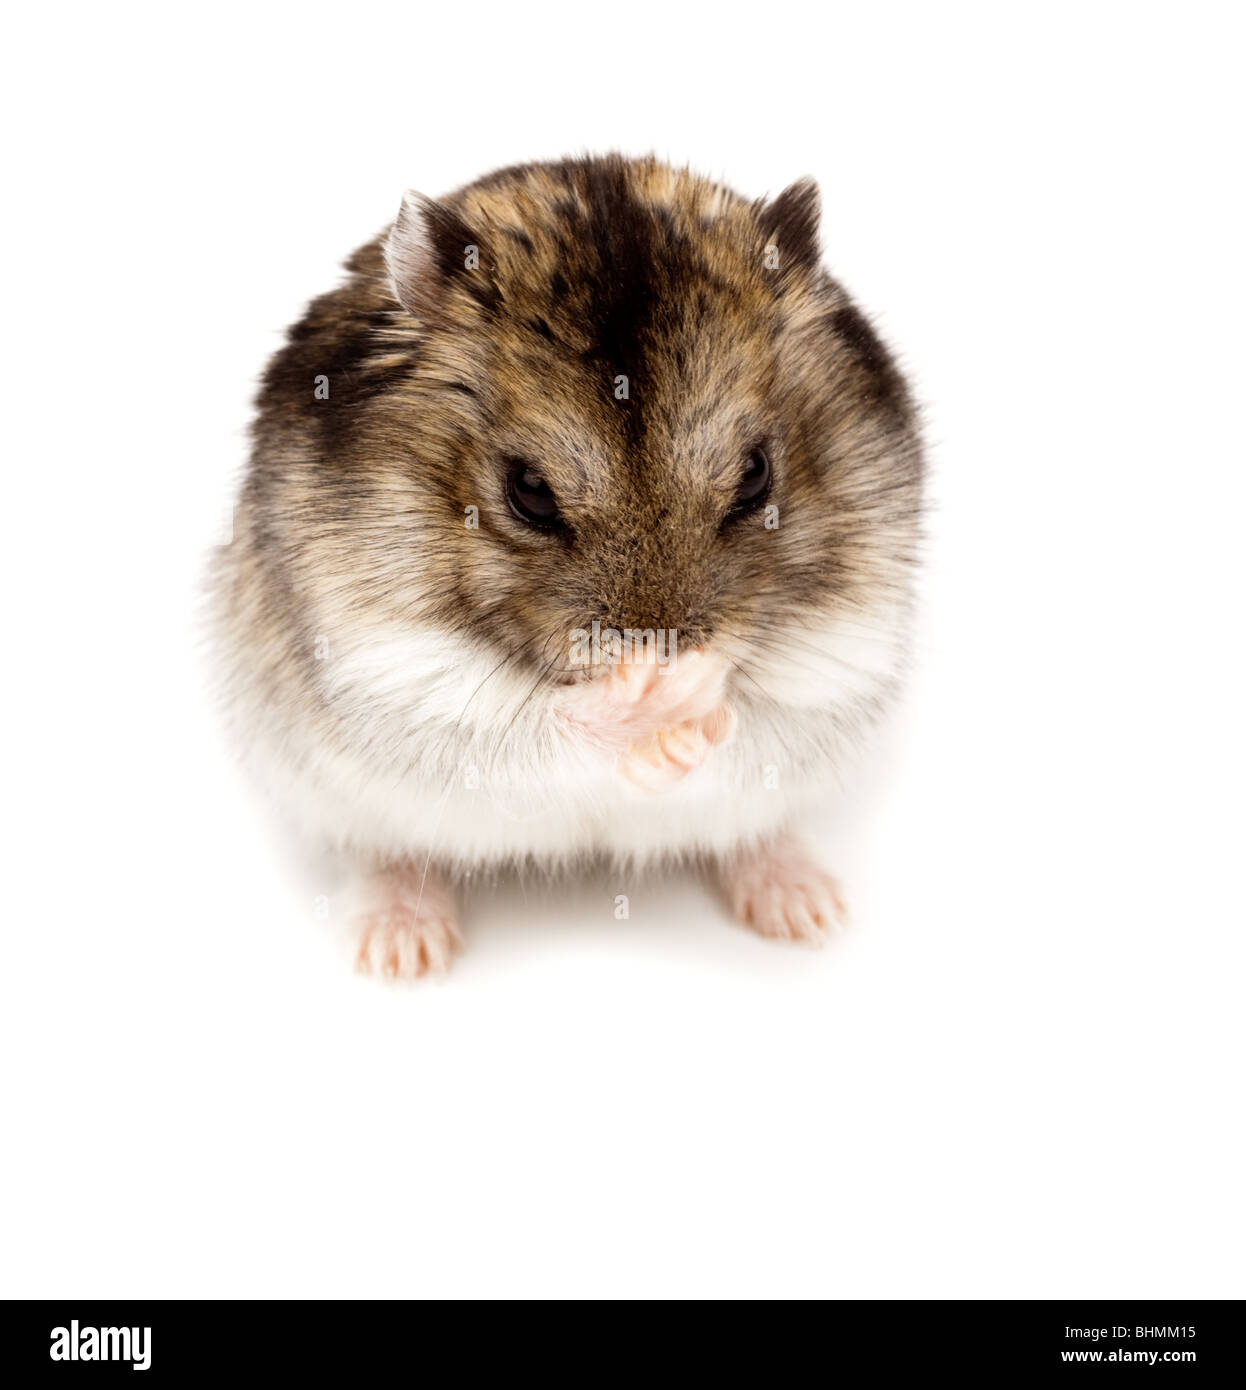 b78e91f4a6a Winter White Russian Dwarf Hamster in studio against a white background. -  Stock Image